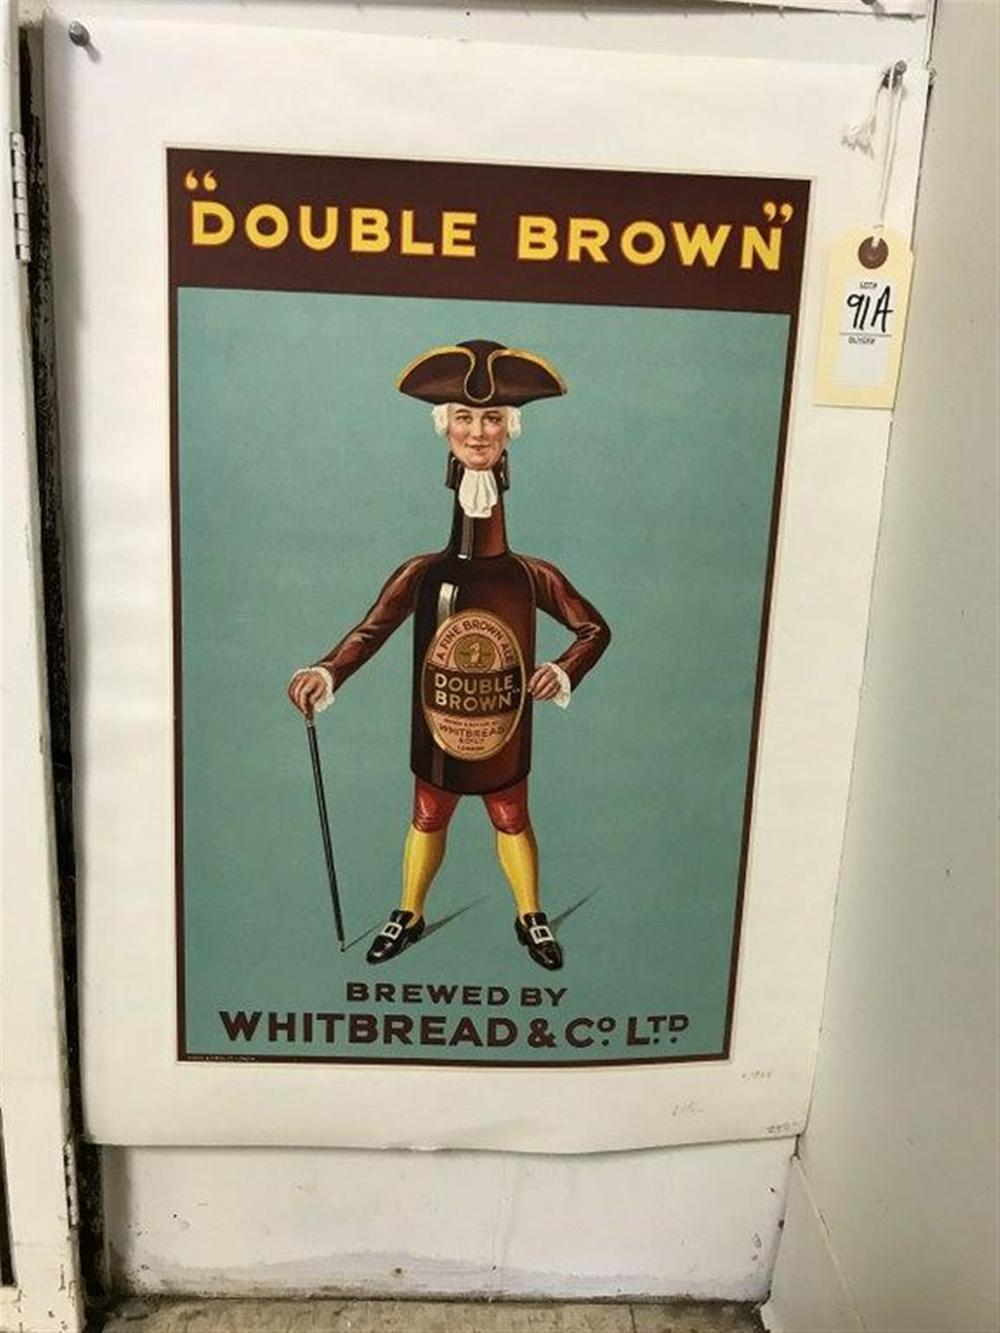 "DOUBLE BROWN BROWN ALE BEER LITHO POSTER, LINEN BACKED, CIRCA 1925, FROM COLLECTION WE ARE SELLING, MEASURES 18 1/2"" X 12""."